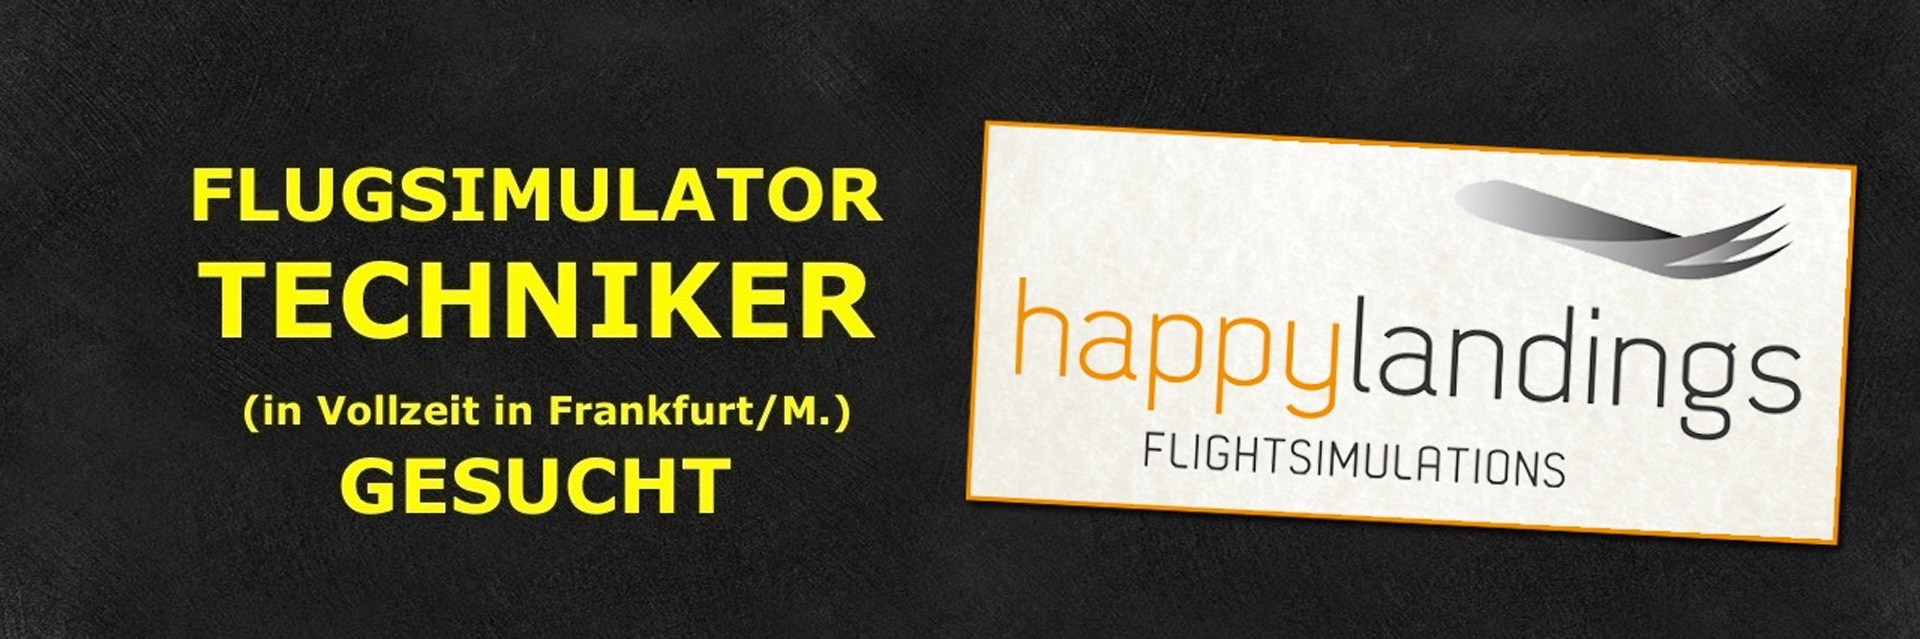 HappyLandings sucht Flugsimulator-Techniker